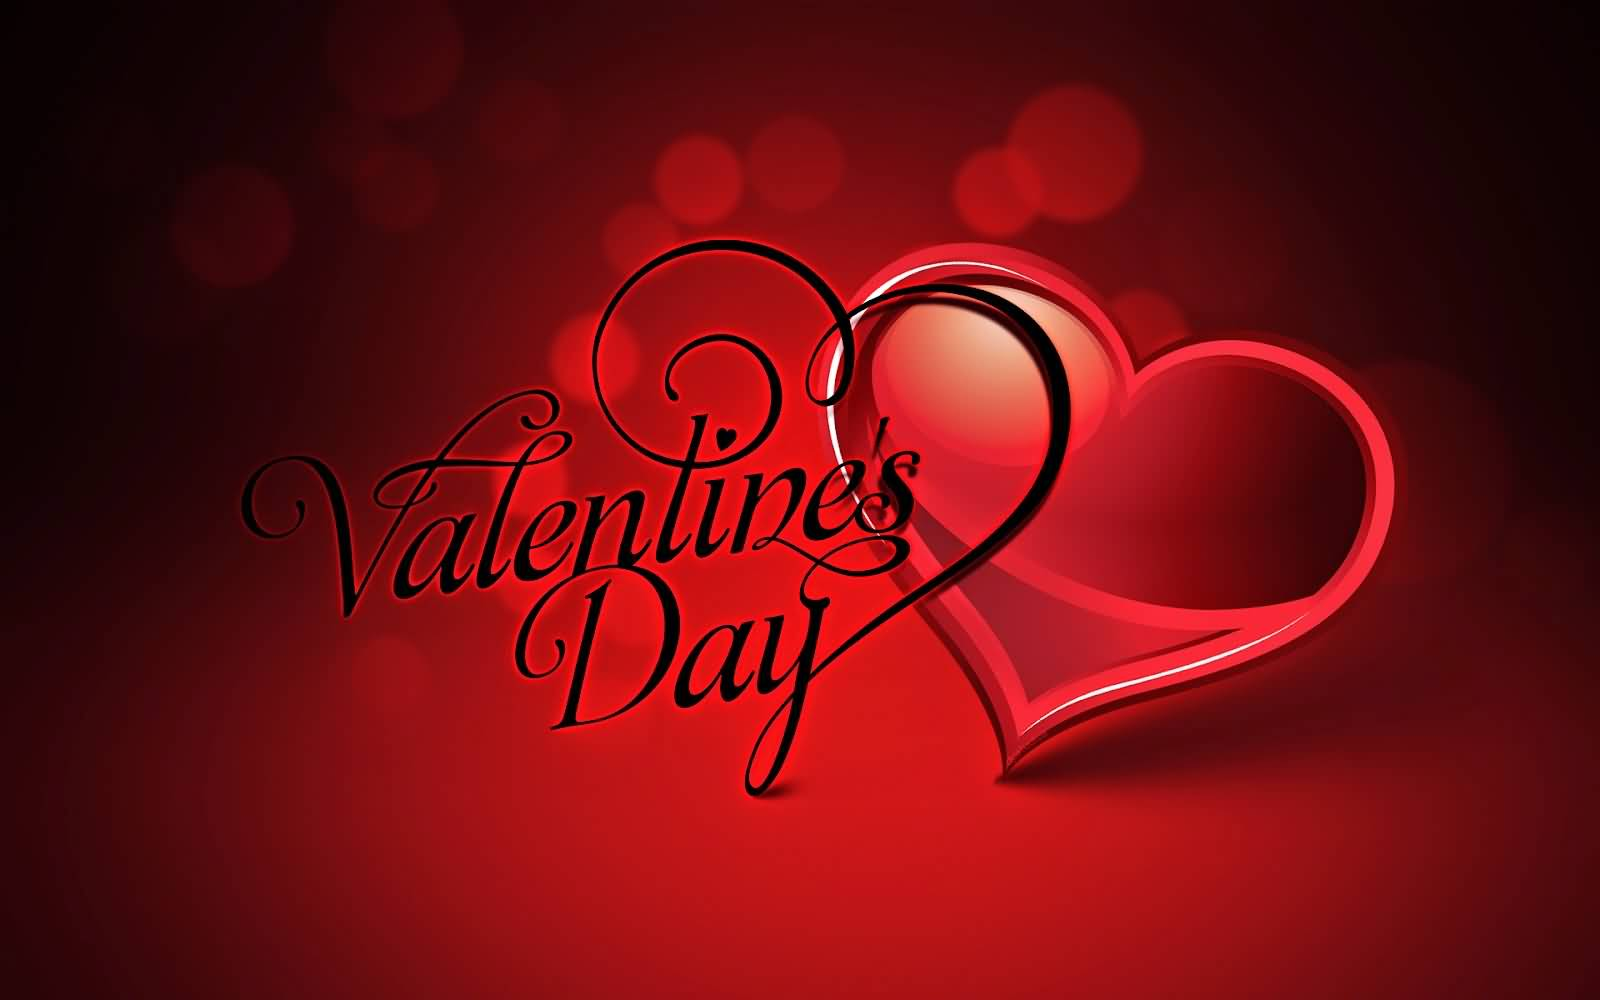 Valentines Day Hearts Wallpapers   Top Valentines Day 1600x1000